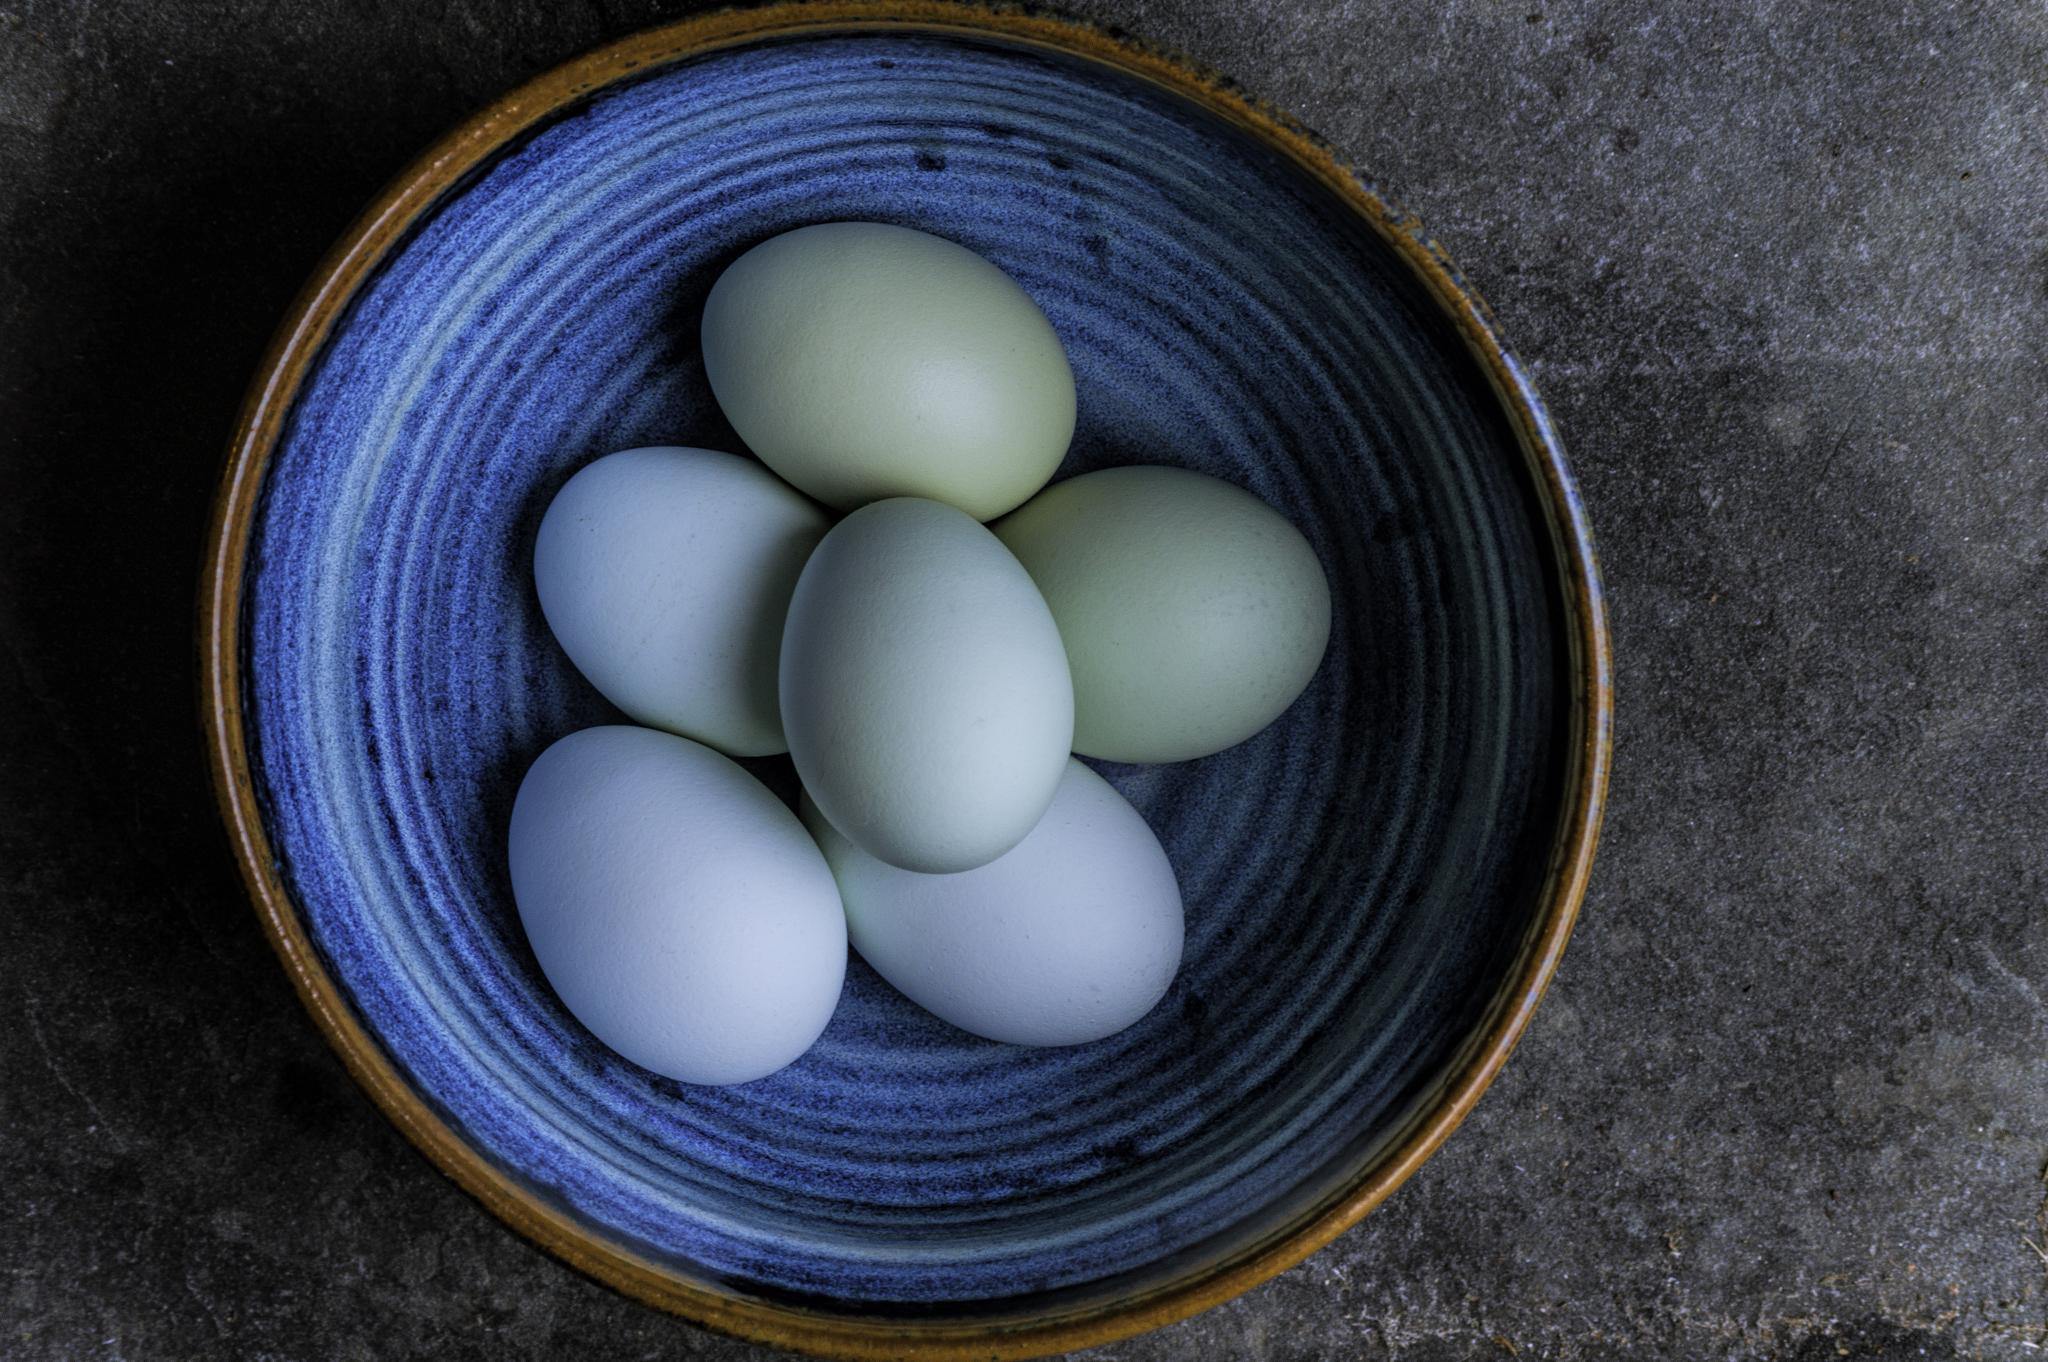 Blue Eggs in a Blue Bowl by StoneyStone